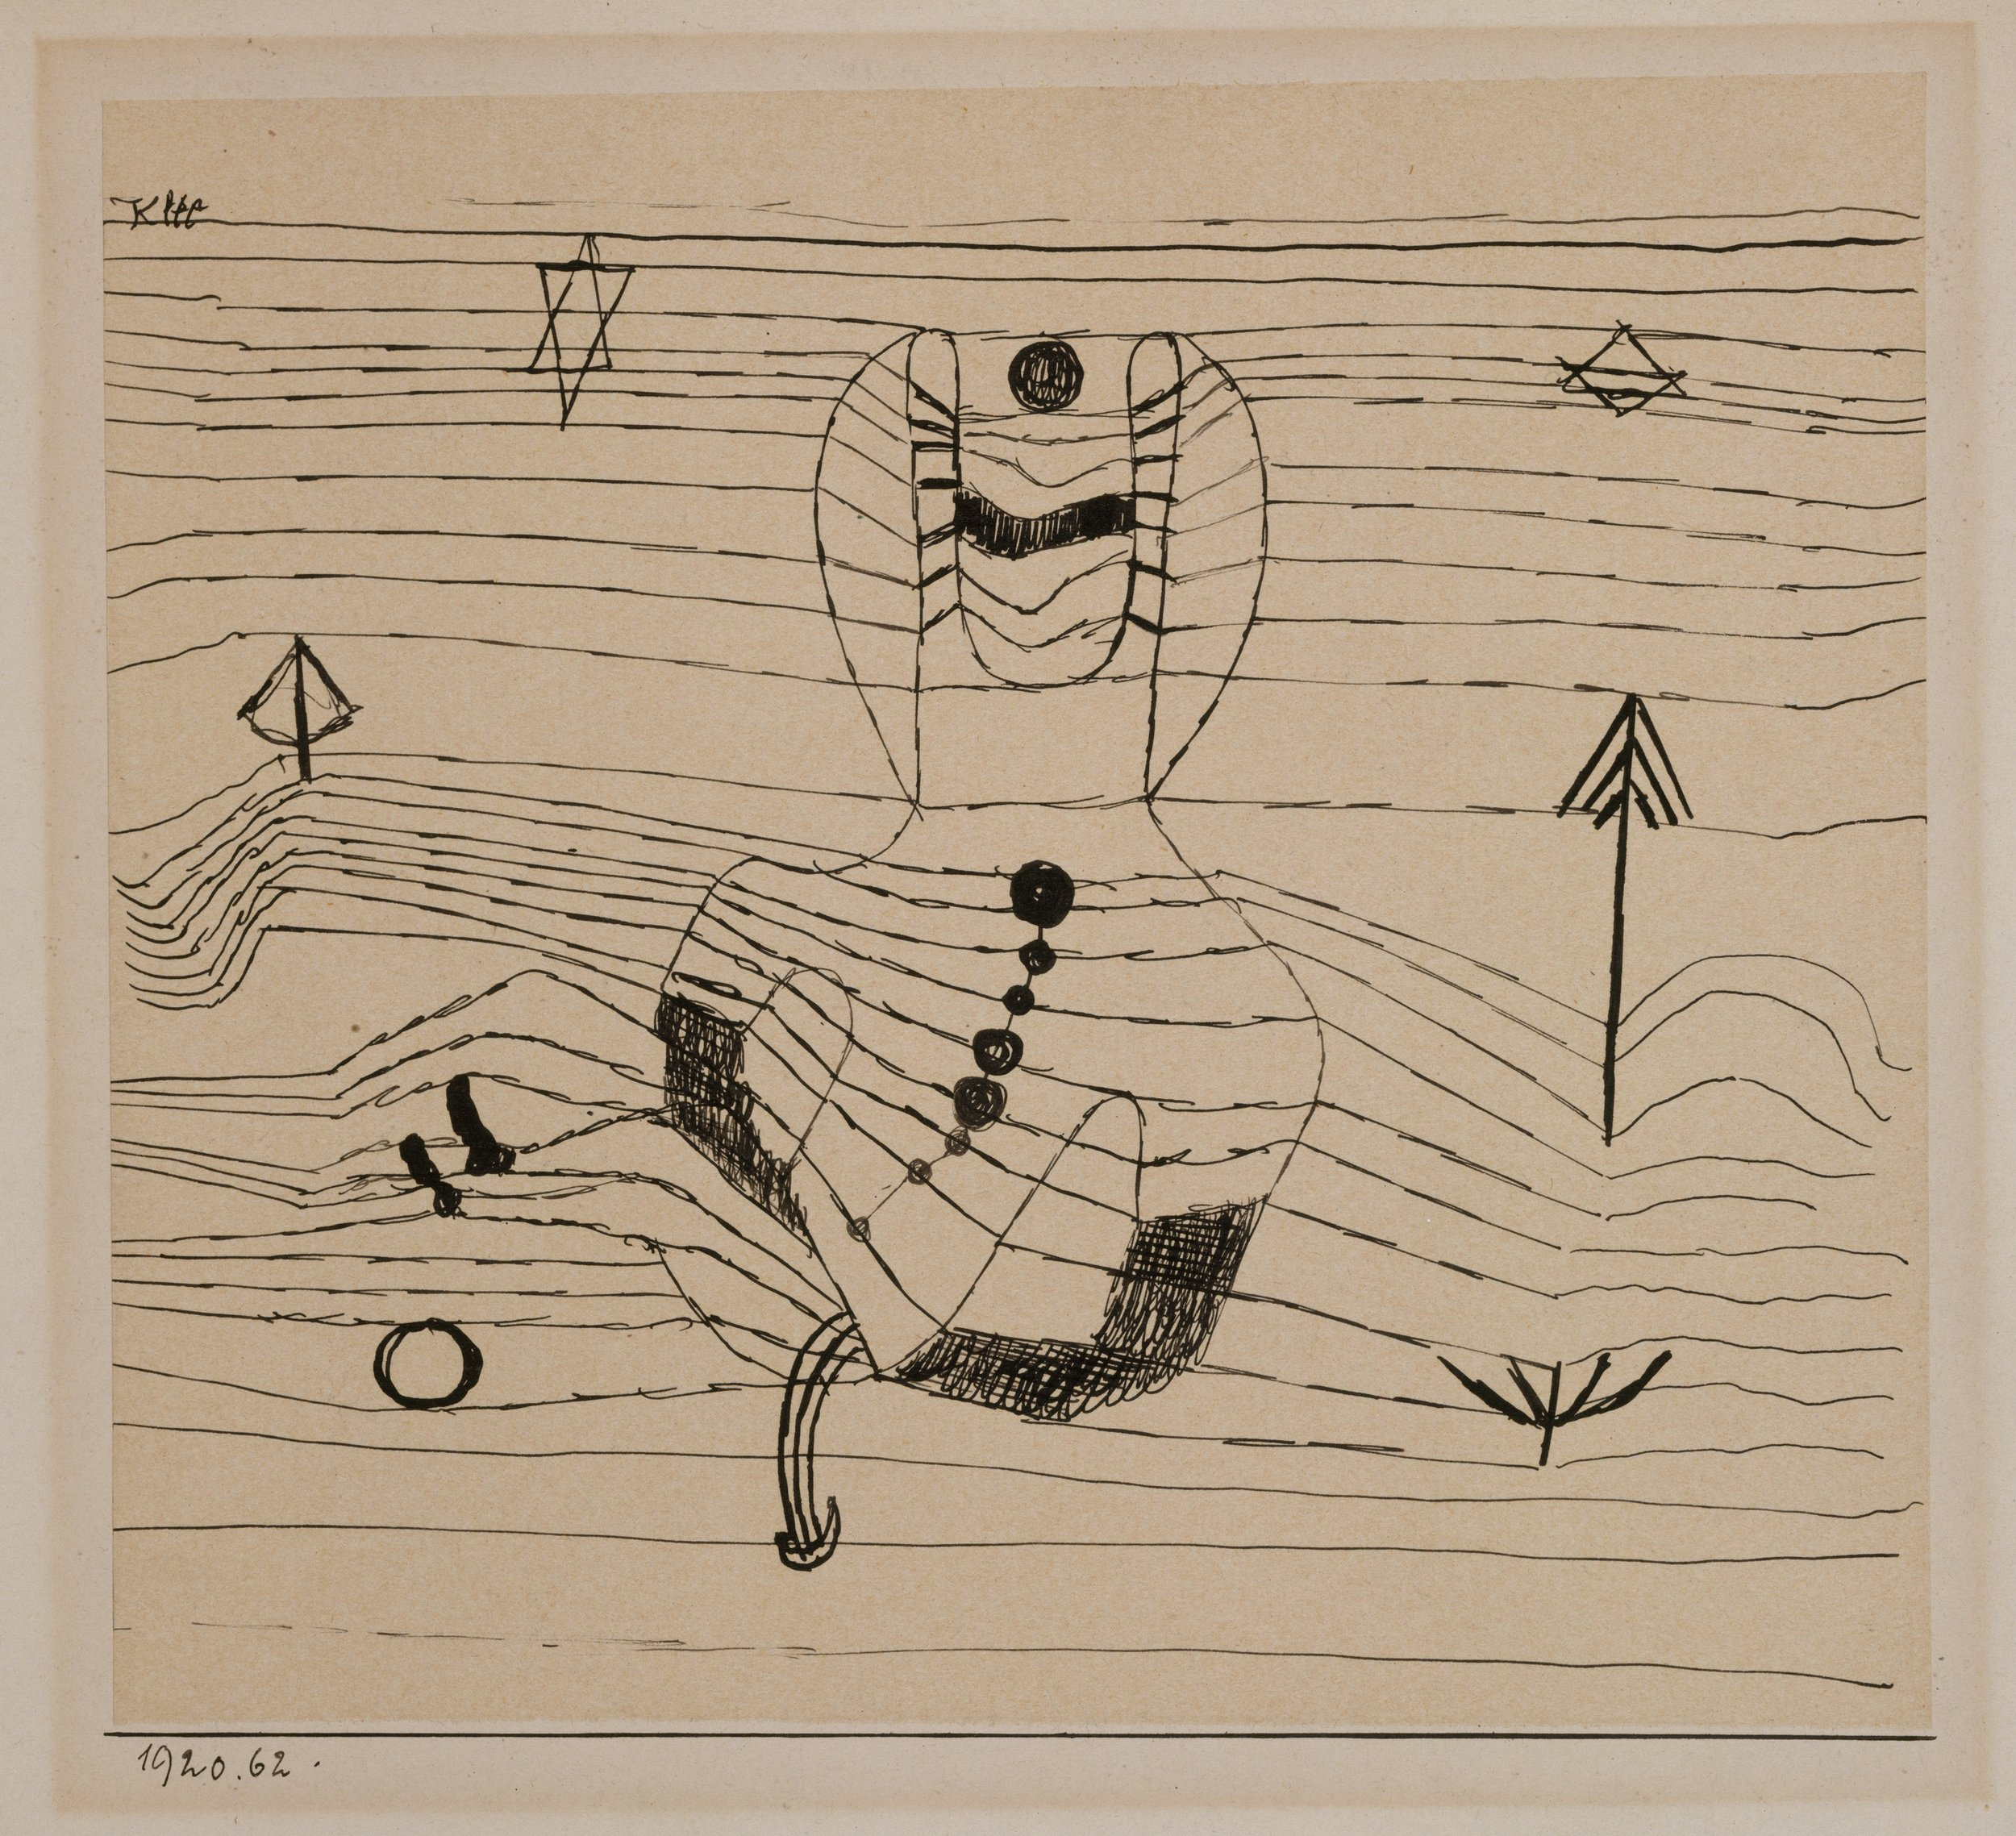 Paul Klee (1879, Münchenbuchsee, Svizzera) - The prevalent geometric aesthetic of the 1920s and Klee's attempts to teach a methodology of art led him to rationalize his own practice as well. His work of the Bauhaus decade is more geometric than before, and the number of forms employed in a given composition is sharply reduced. Among the many types of compositions resulting from this practice are pictures made entirely of coloured squares, horizontal striations, or patterns resembling basket weave and, among his most evocative, a number of paintings in which puzzlingly disparate objects-faces, animals, goblets, heavenly bodies, coexist in a black undifferentiated space.As a modern artist, during the thirties, Klee was dismissed from his position, and his house and studio were searched by the Gestapo on account of his known left-wing sympathies. Despite these difficulties, Klee continued to produce his art without restraint. The drawings he did at this time are mostly representational and even narrative; many directly reflect the political disturbances of the day, dealing in ironic fashion with demagogy, militarism, political violence, and emigration.